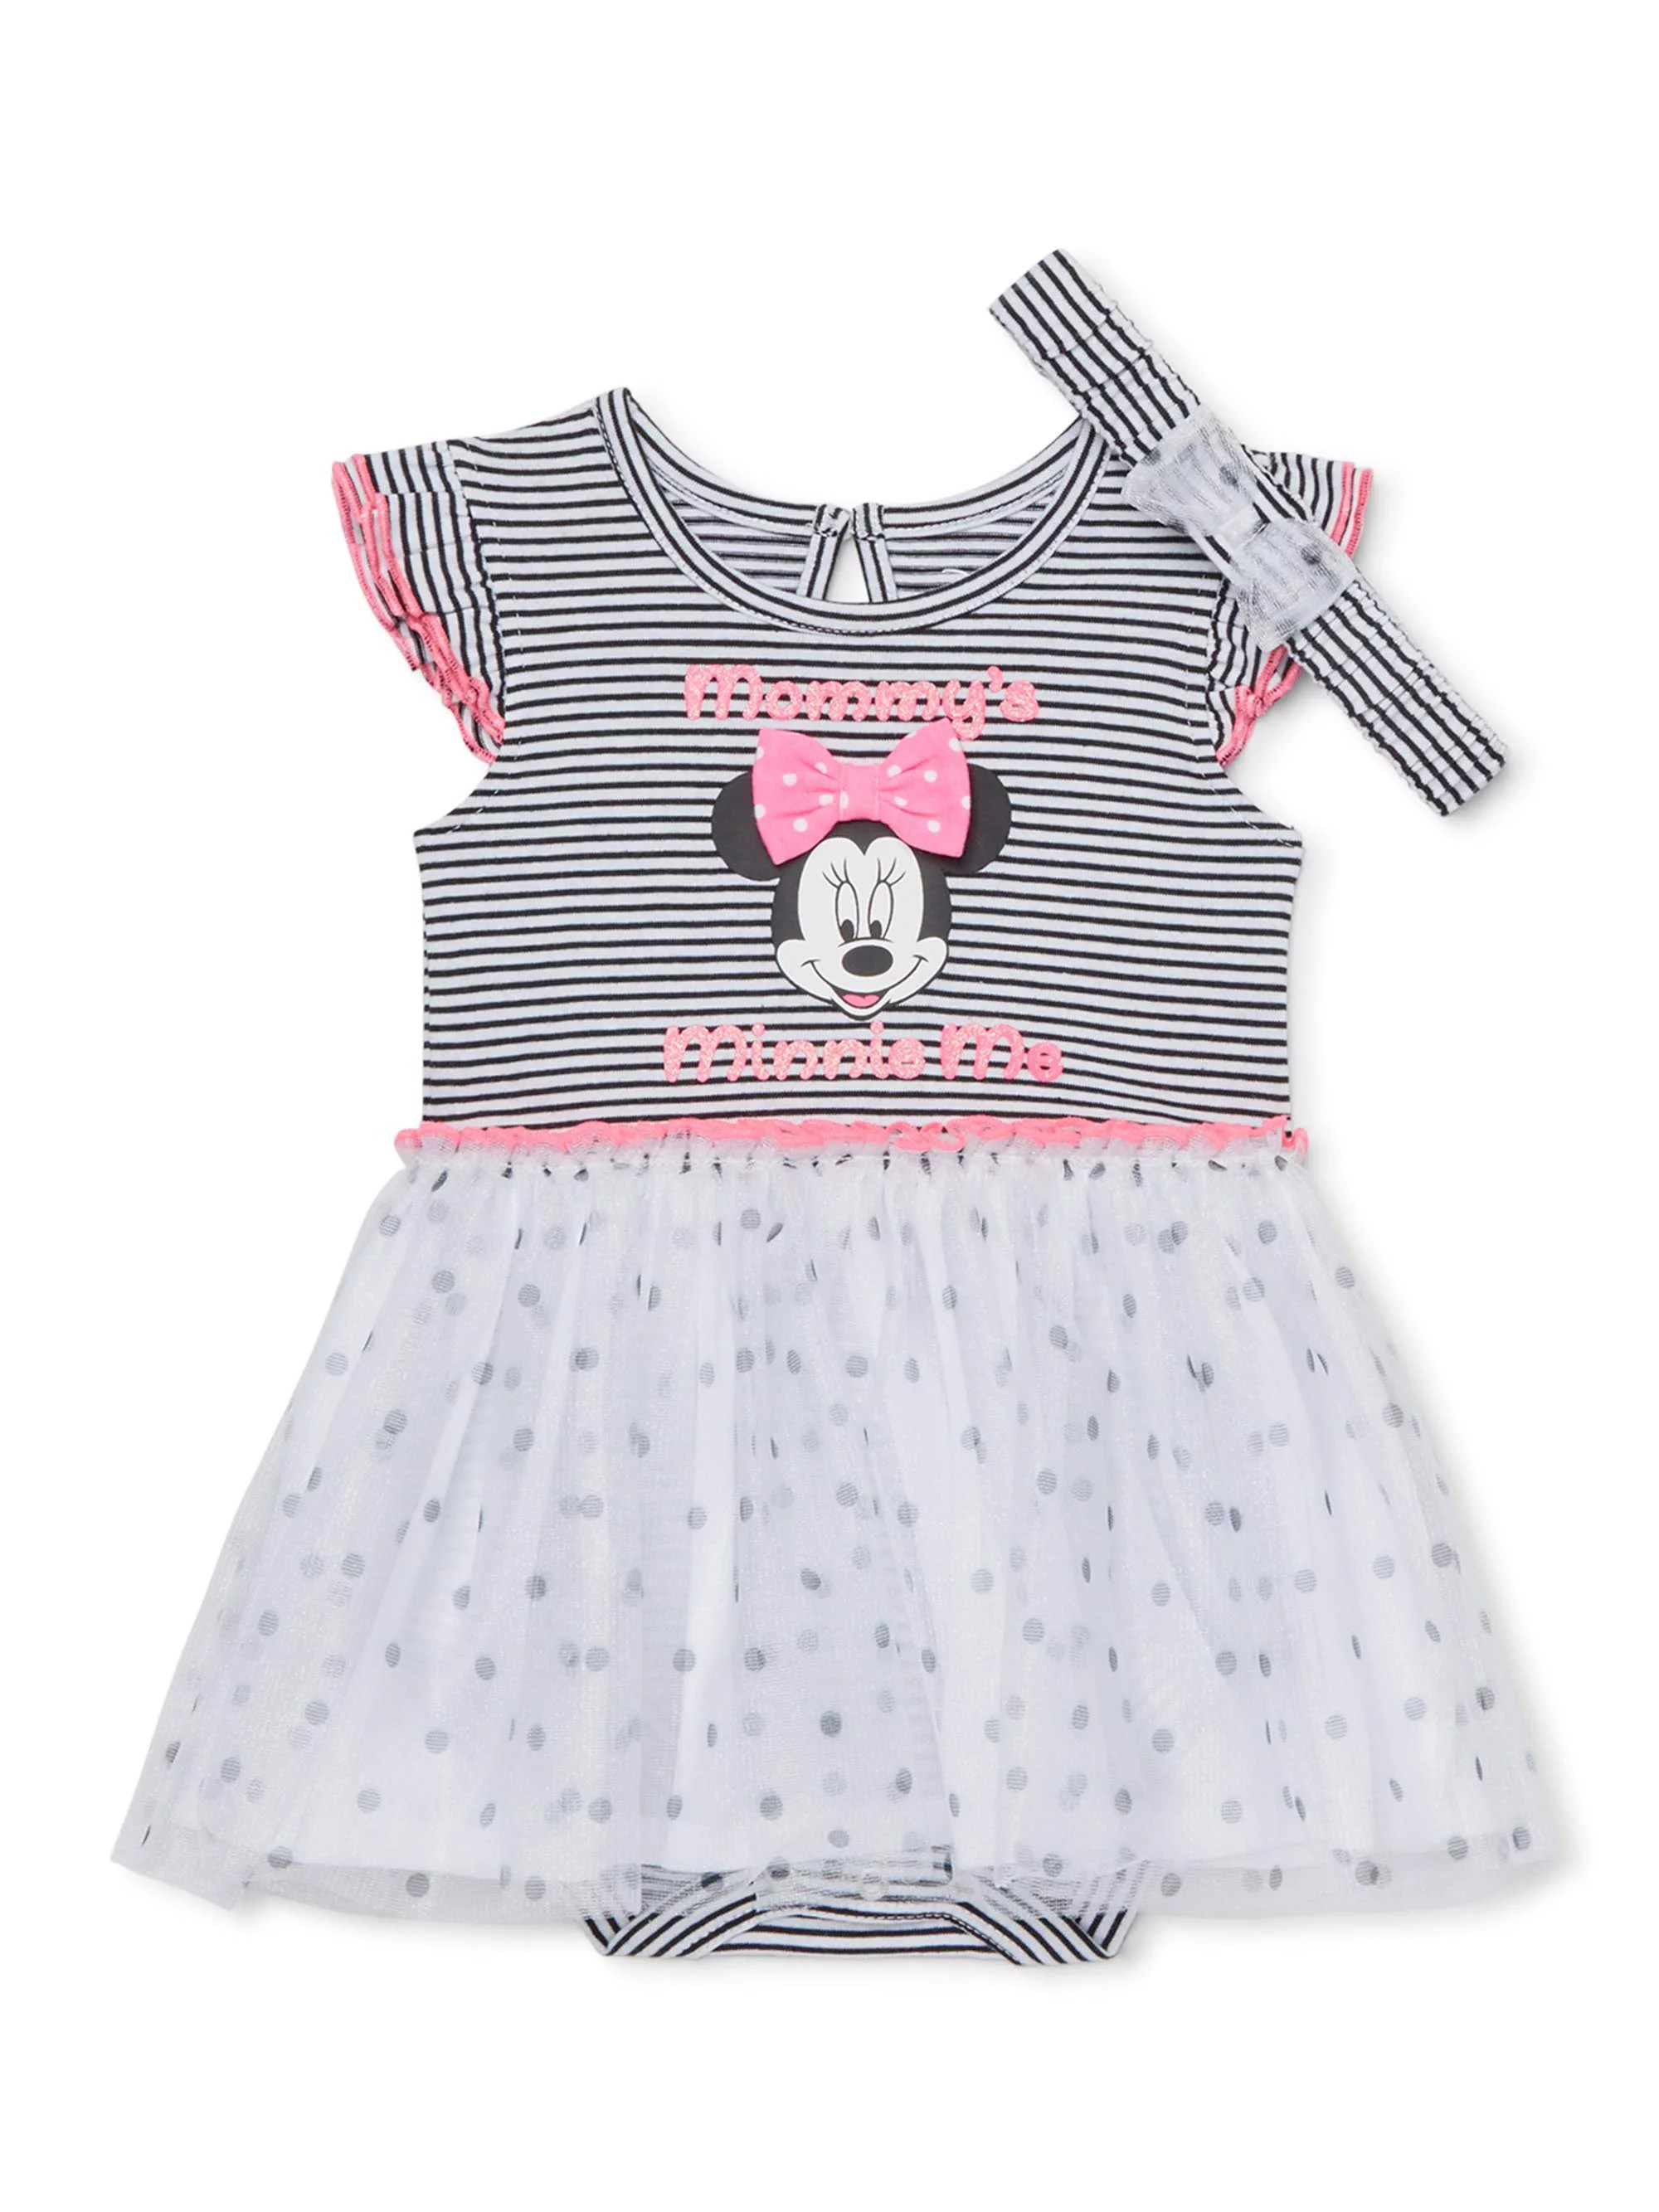 Minnie Mouse Baby Outfit Sets Walmart Com